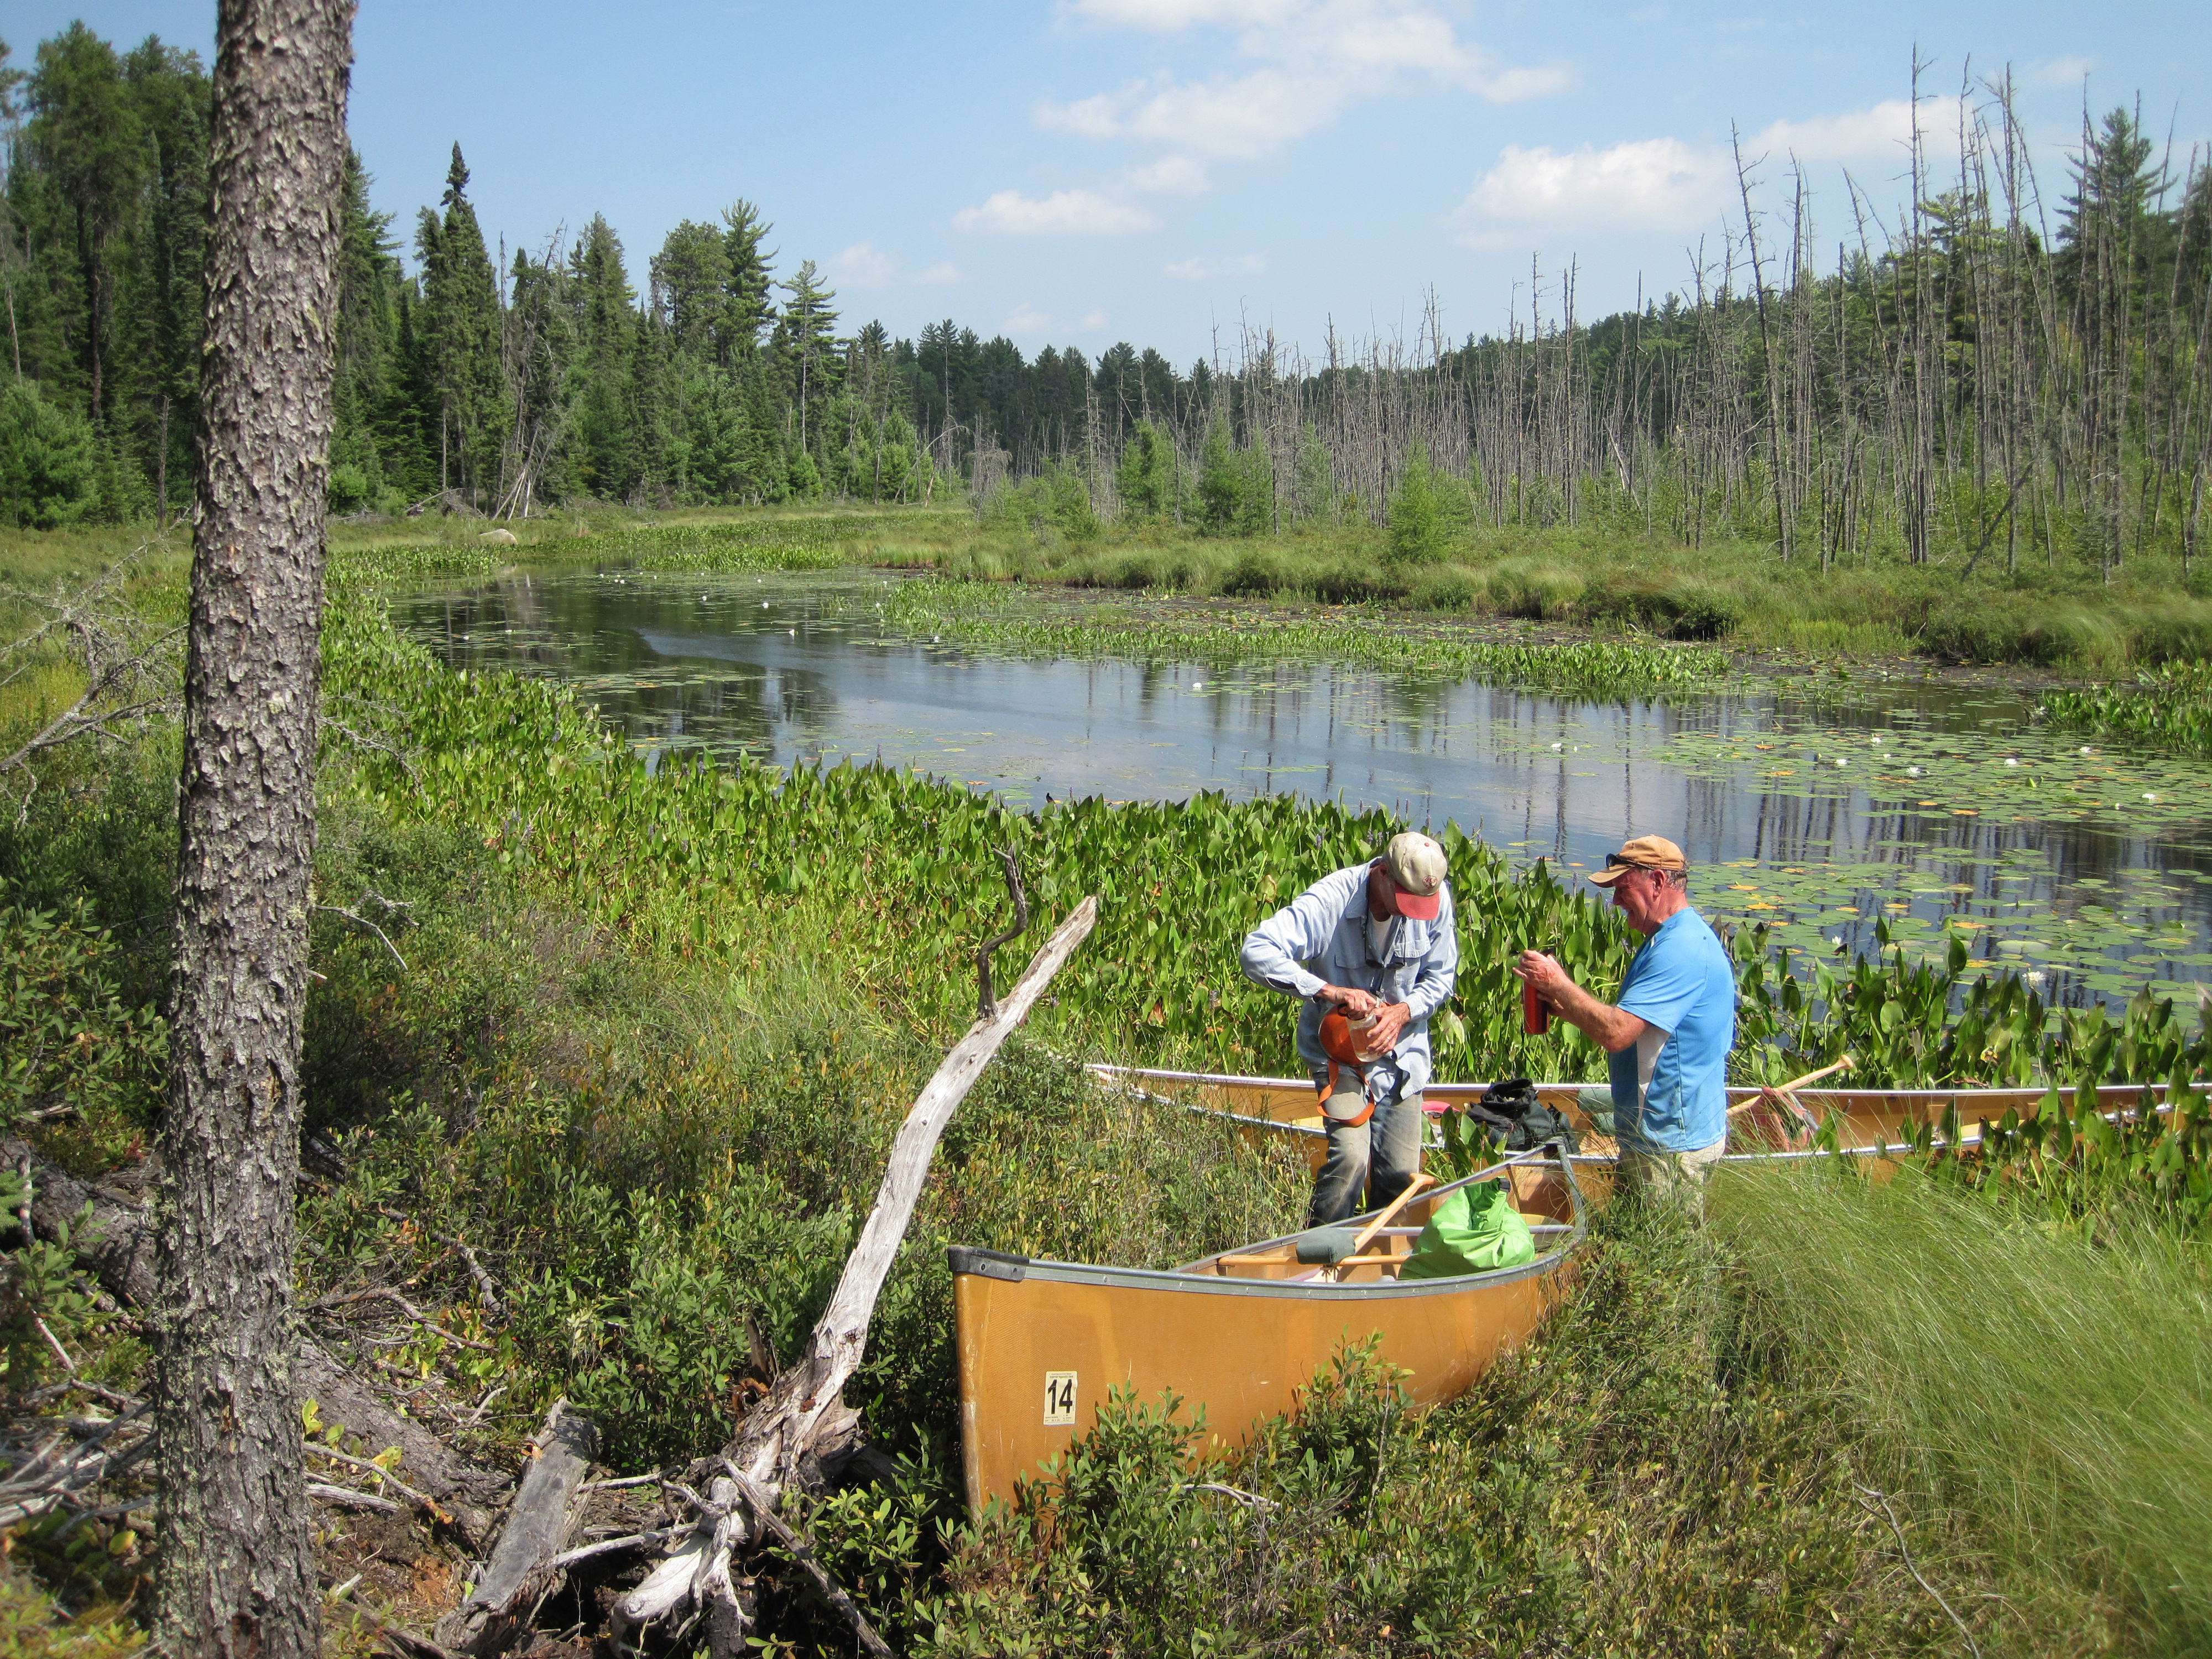 Seven volunteers with Earth Team logged 510 hours of service in the Boundary Waters Canoe Area Wilderness for assisting NRCS staff on five soil surveying expeditions.